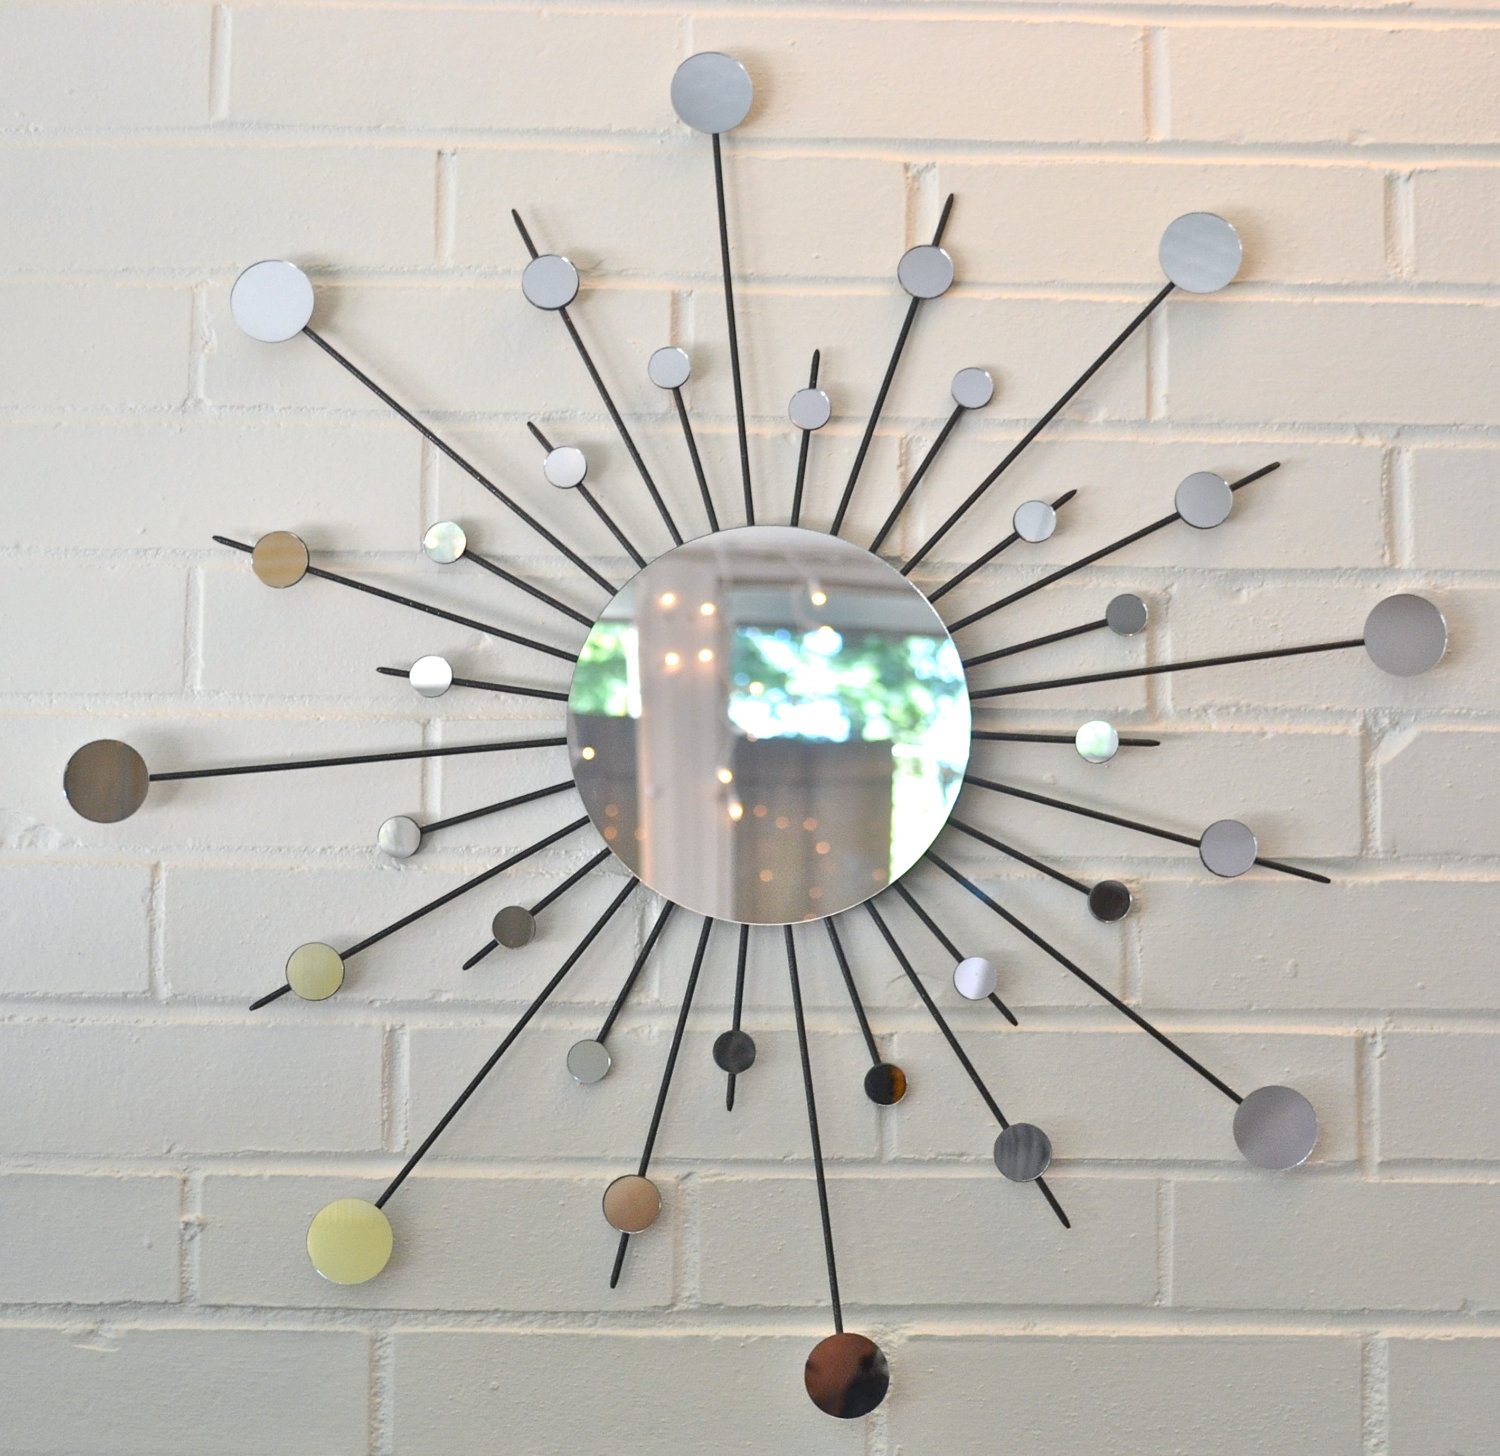 Permalink to Starburst Mirrored Wall Sconce